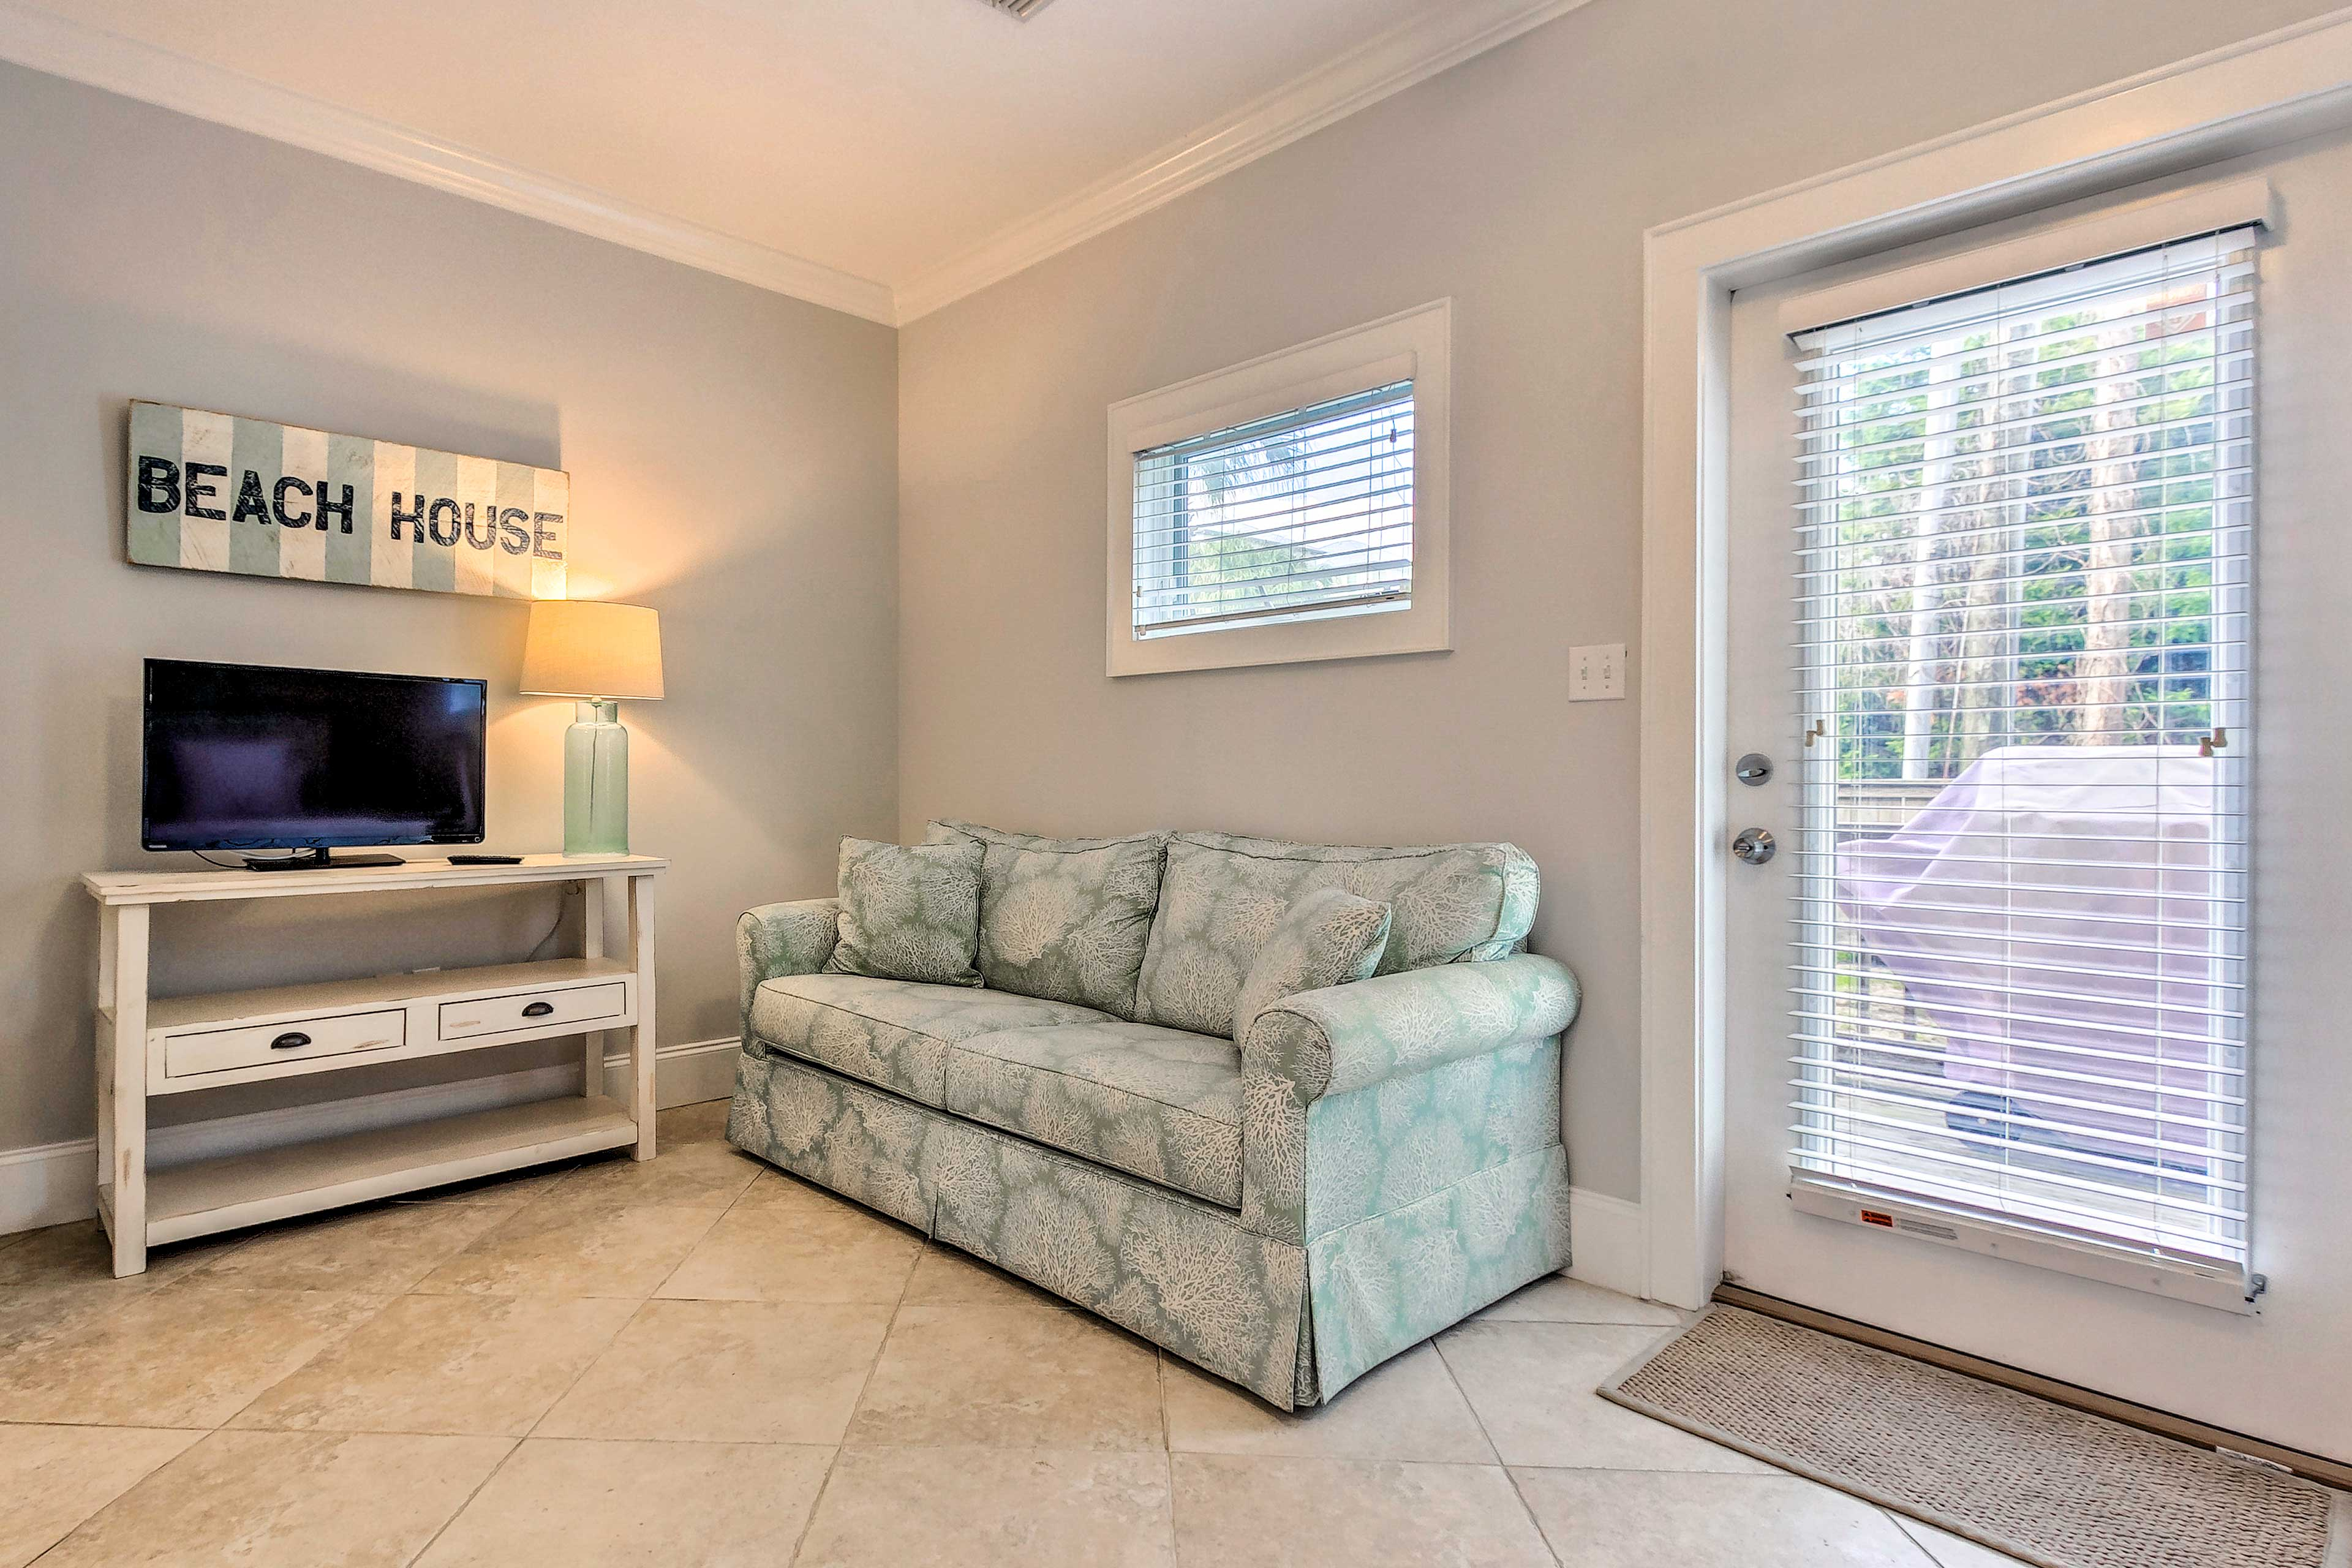 The master bedroom boasts a Smart TV & sitting area.